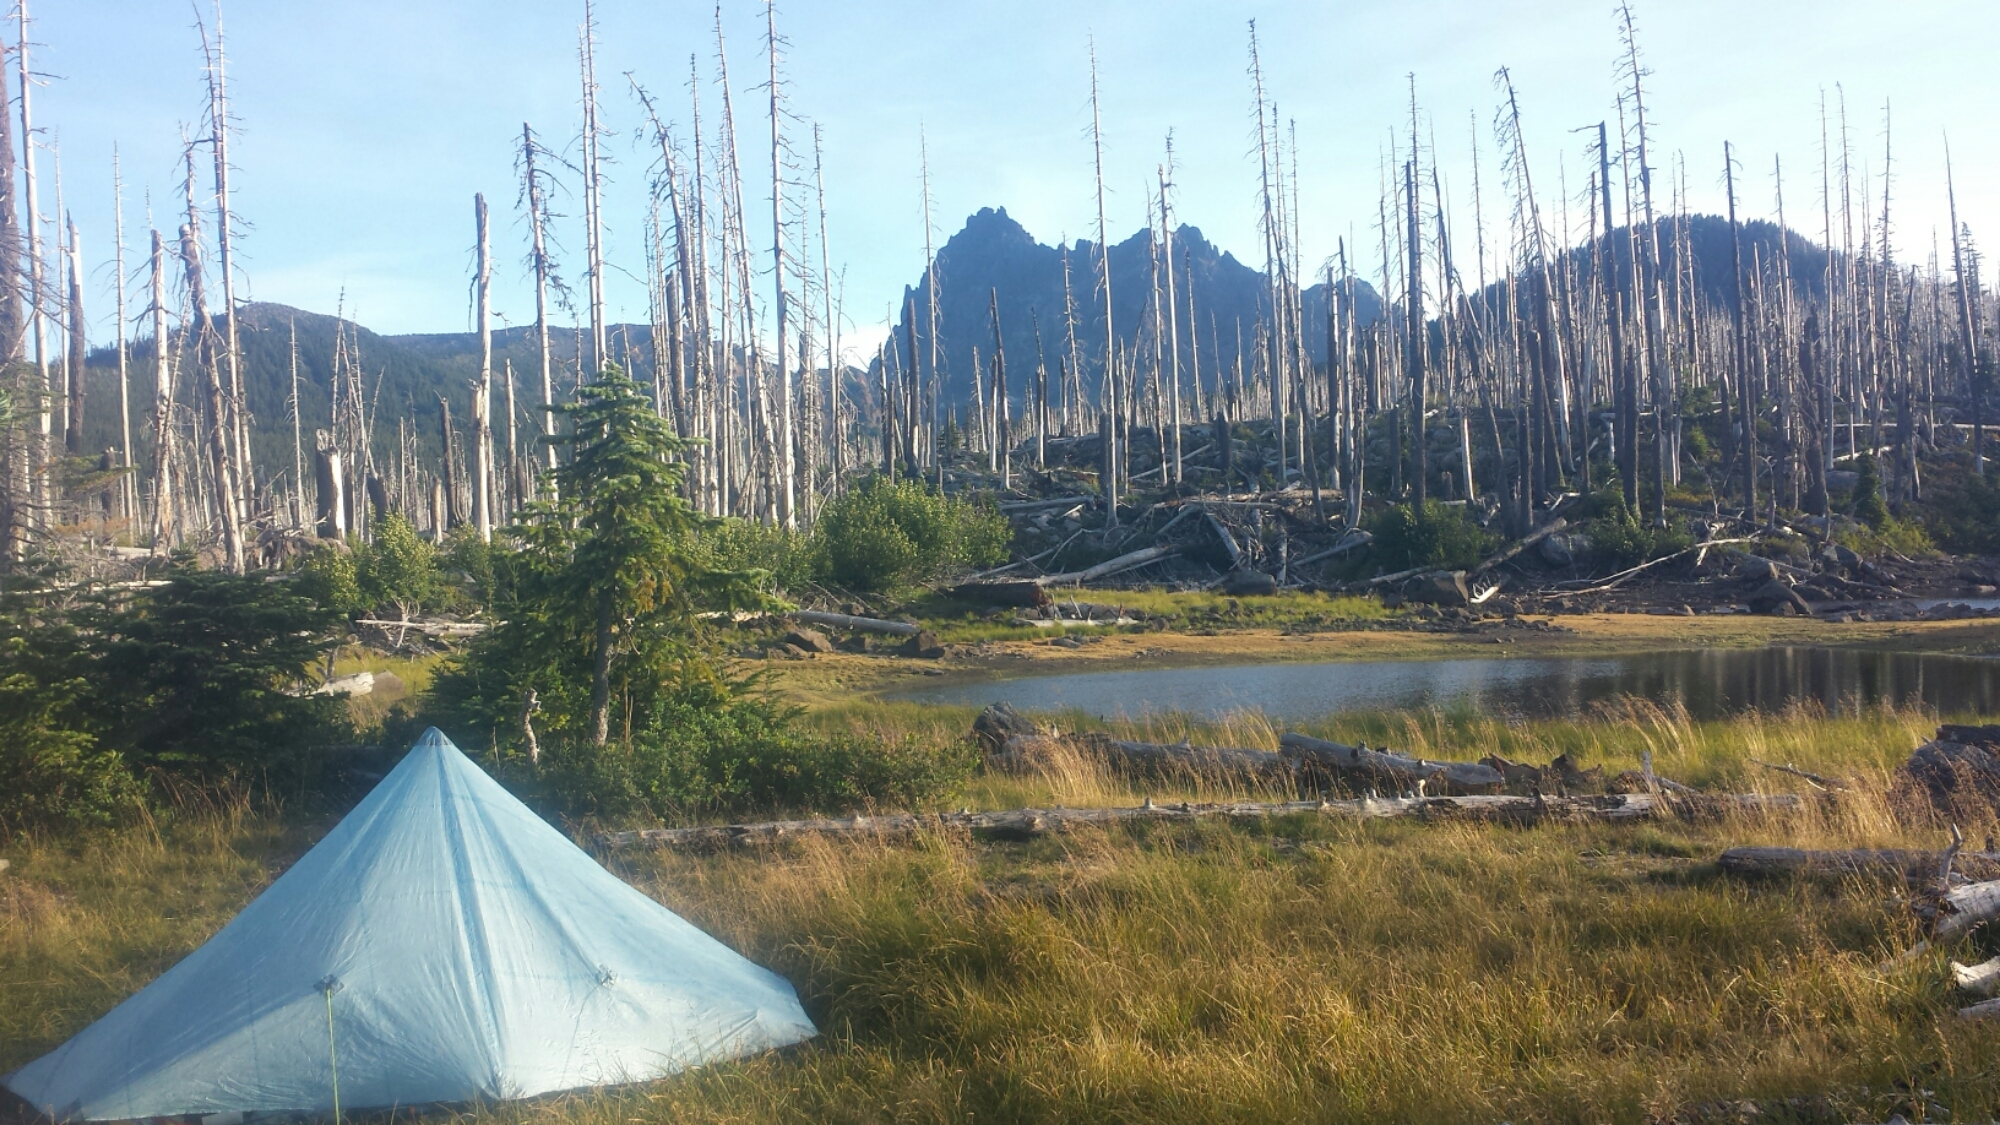 Camping near Koko Lake